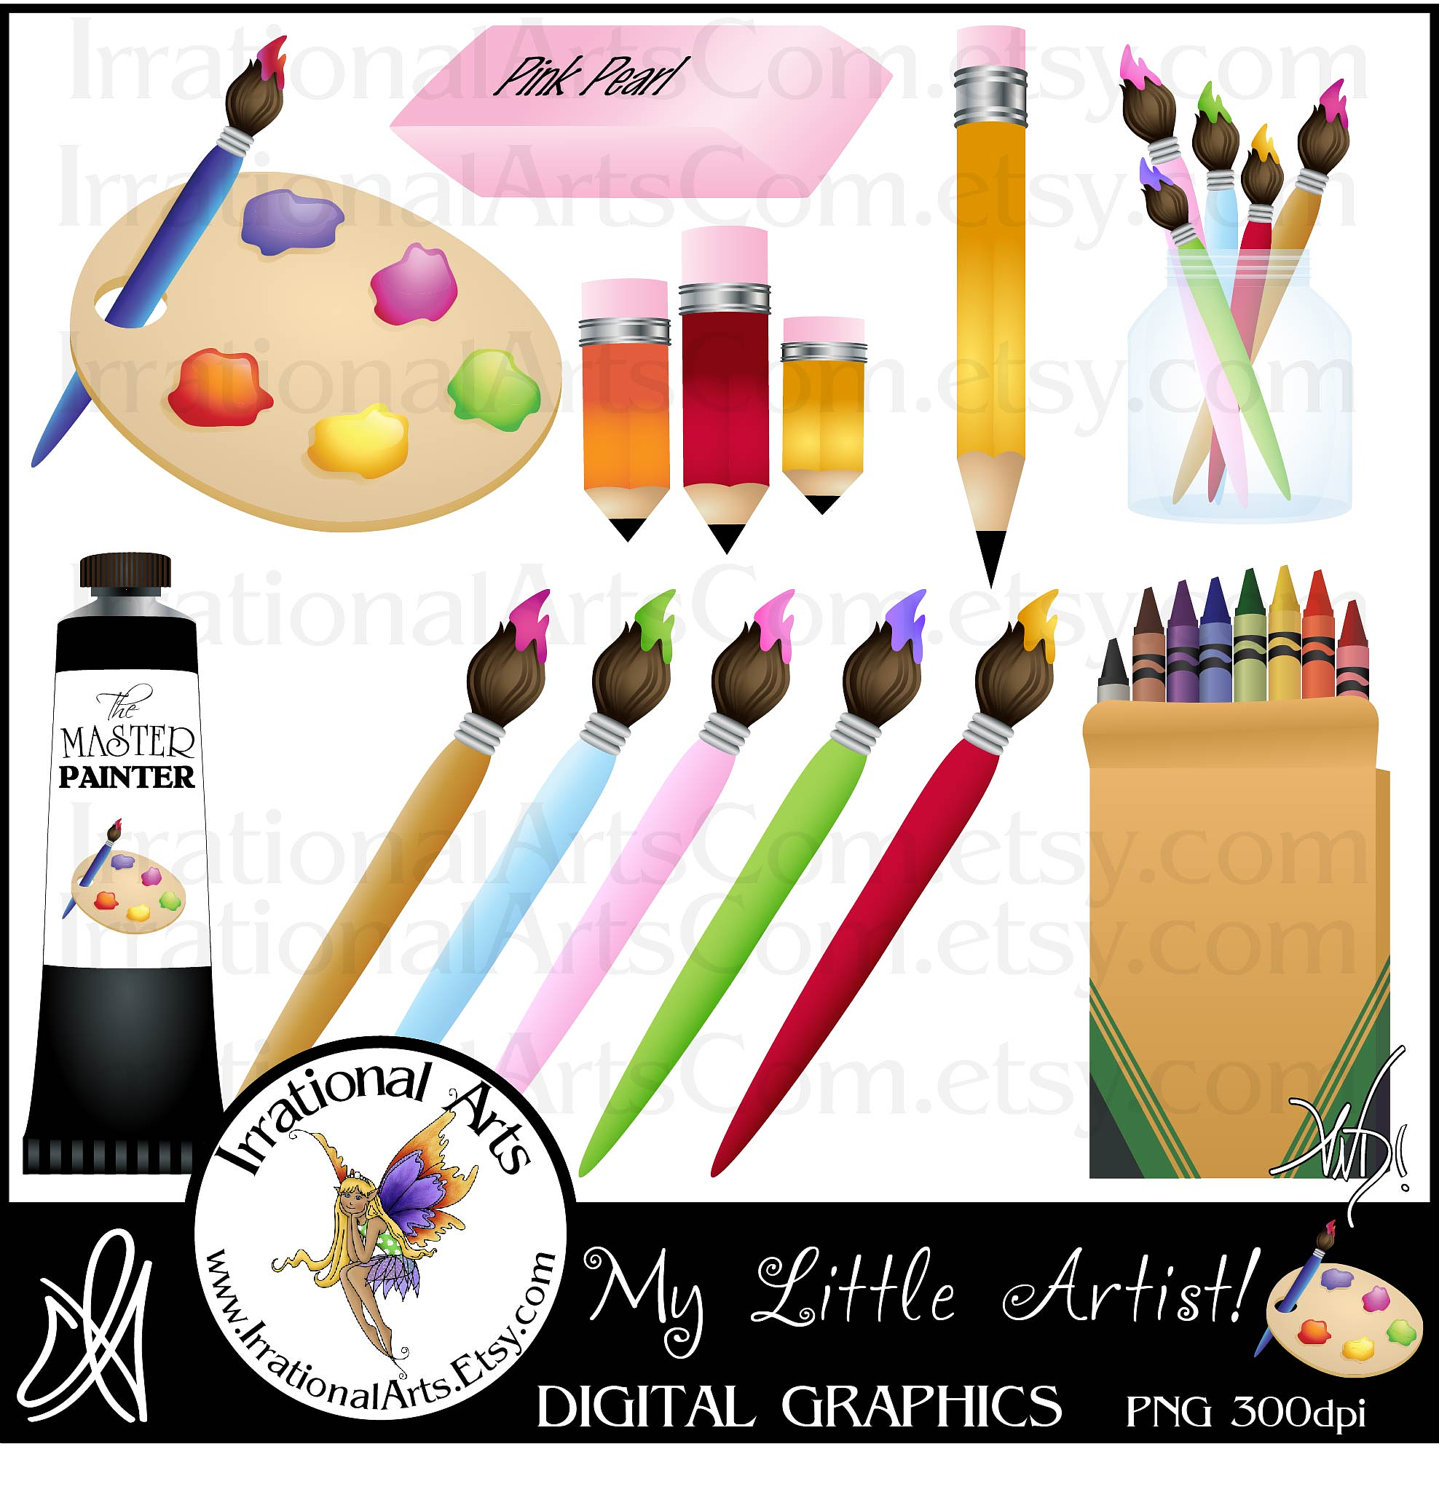 Paint Cans And Brushes Clip Art.